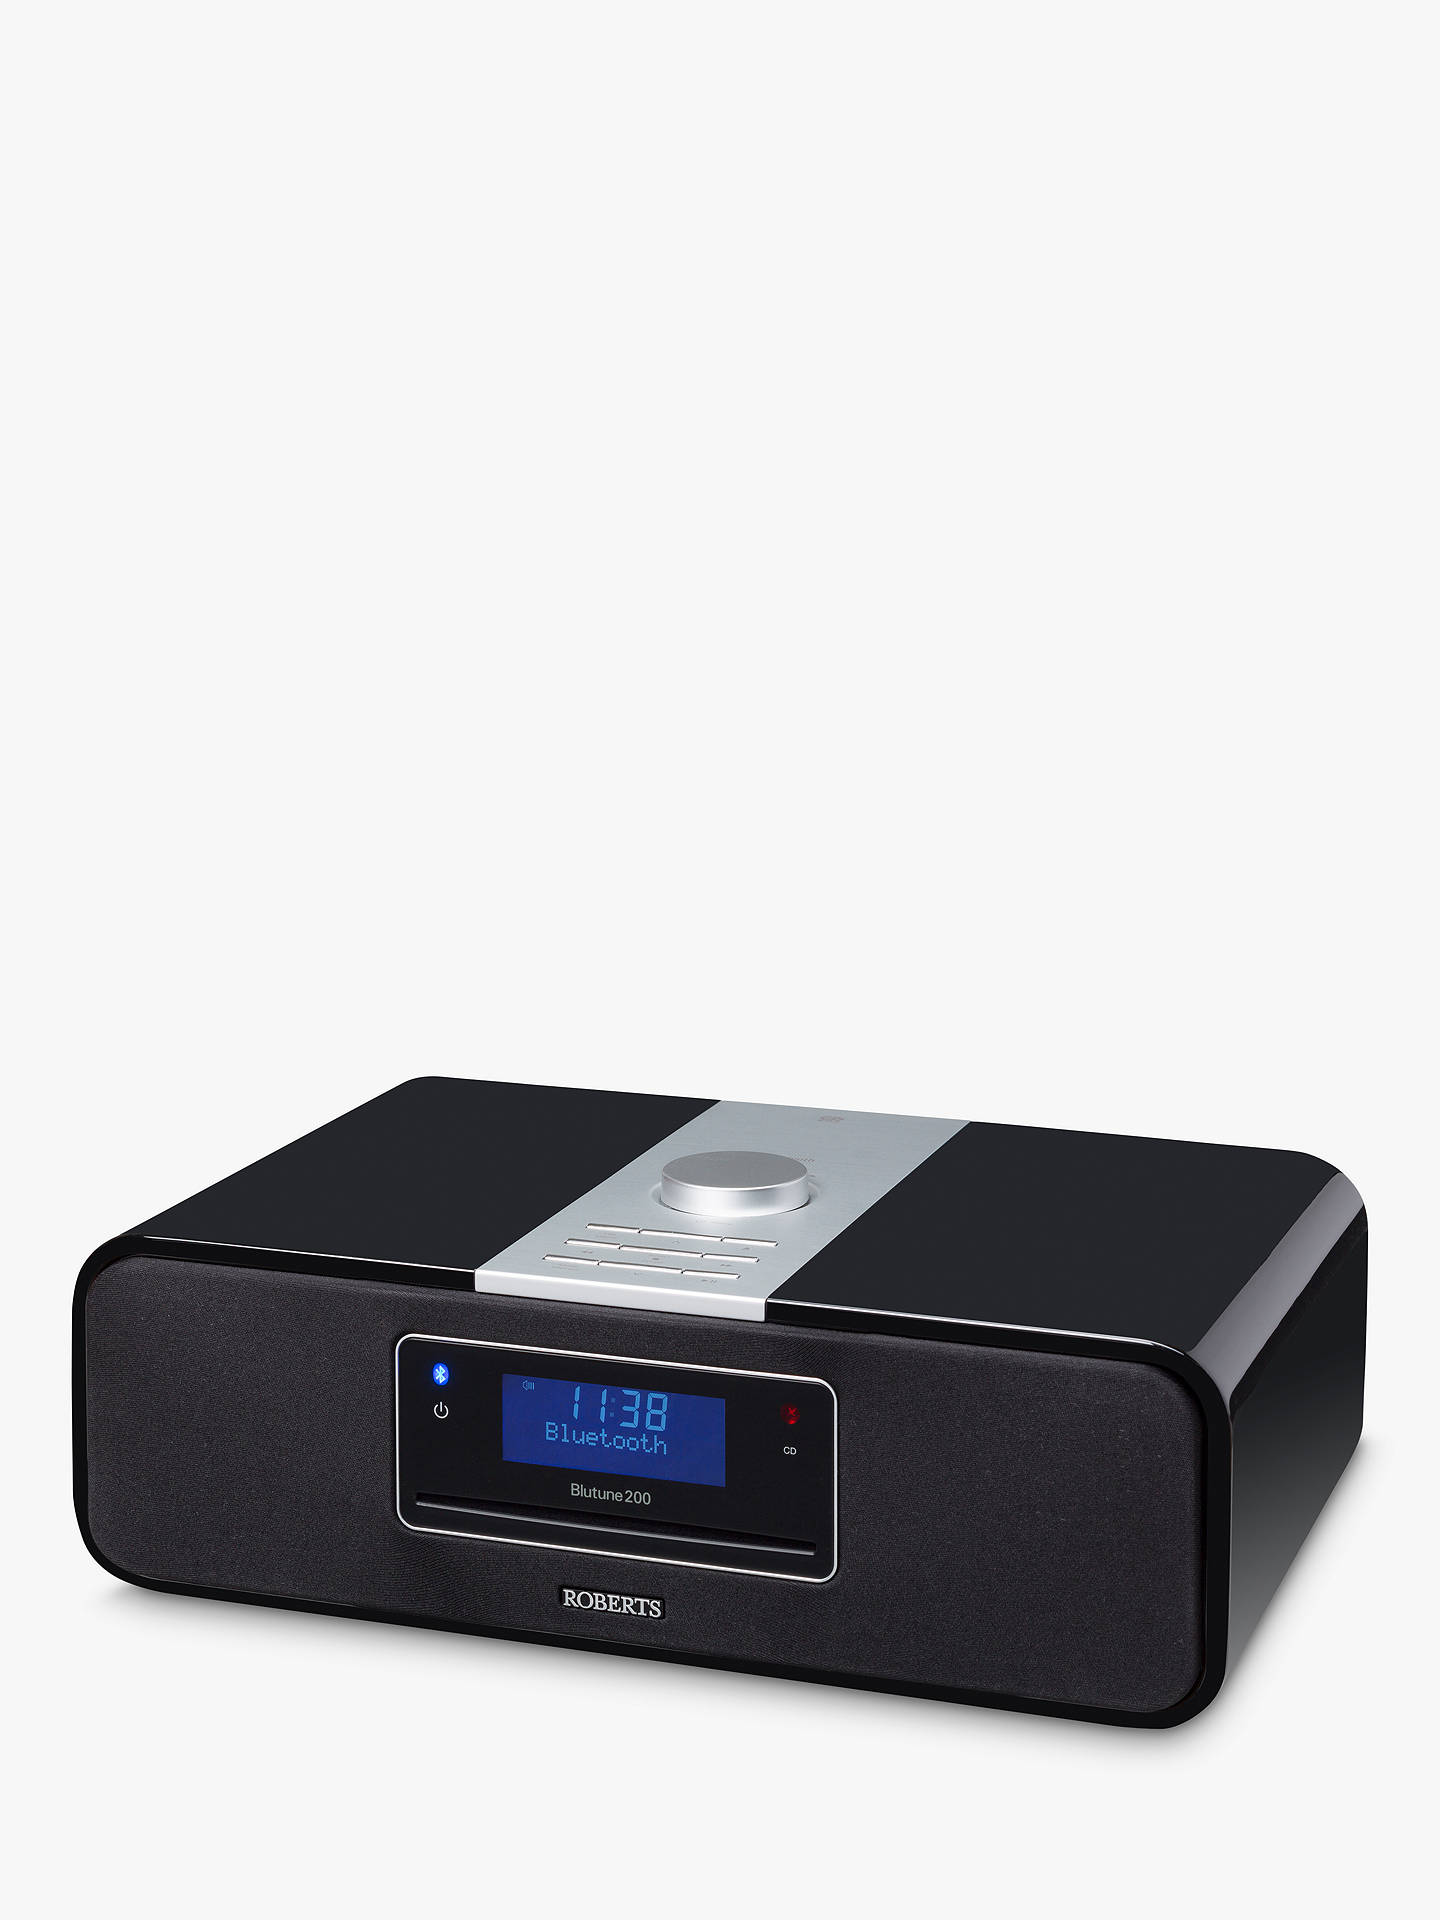 roberts blutune 200 dab fm cd bluetooth radio at john. Black Bedroom Furniture Sets. Home Design Ideas